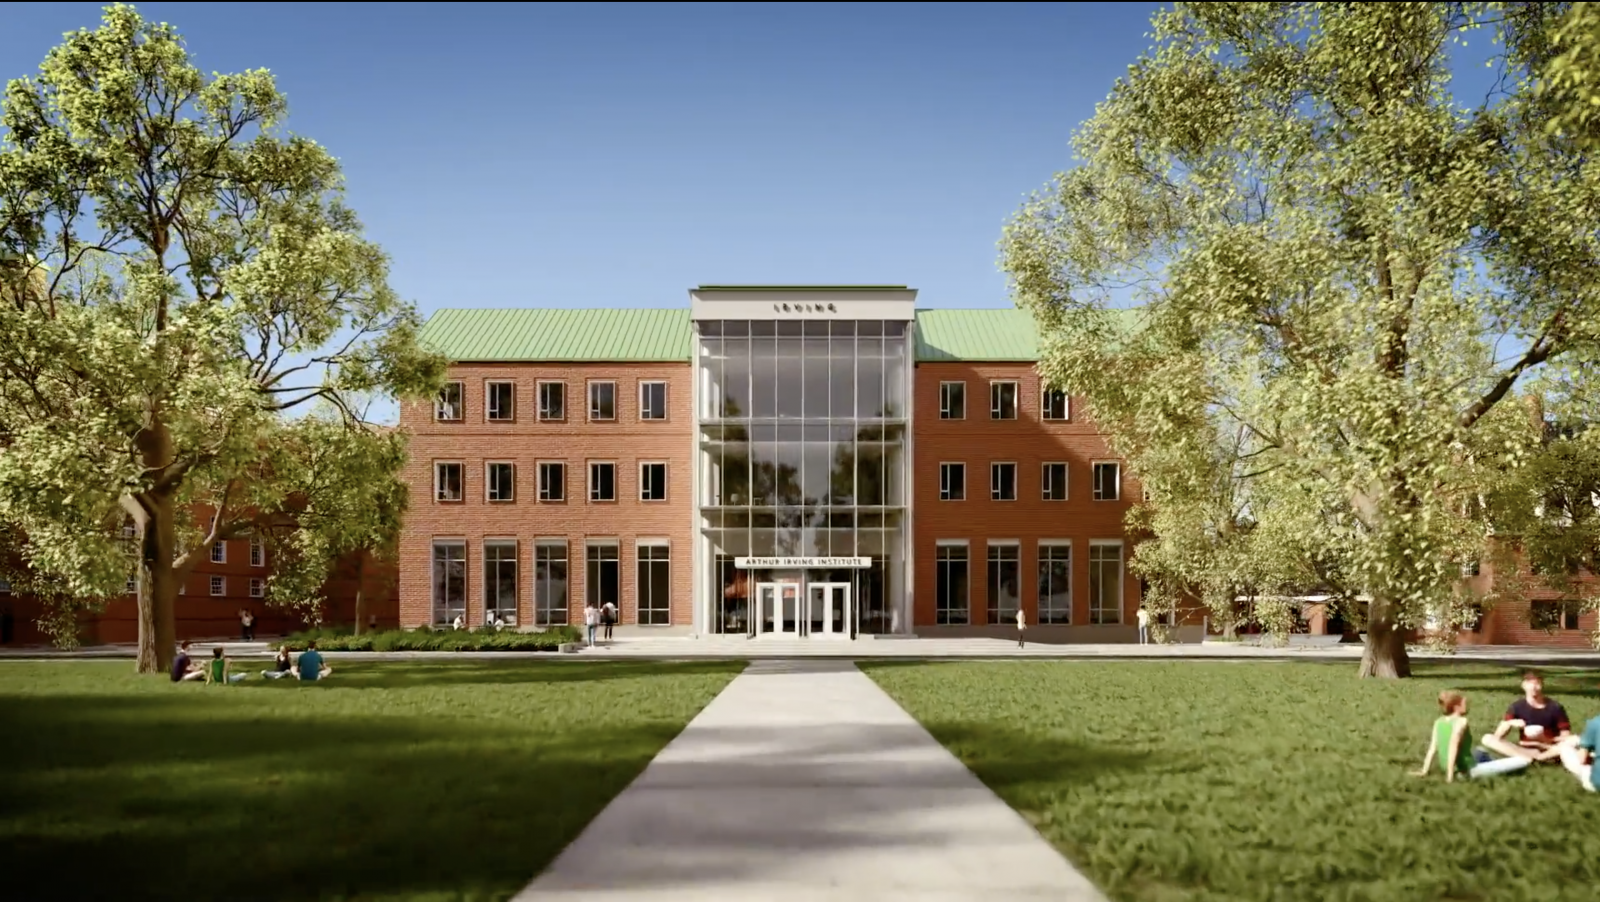 Rendering of the new Irving Institute building